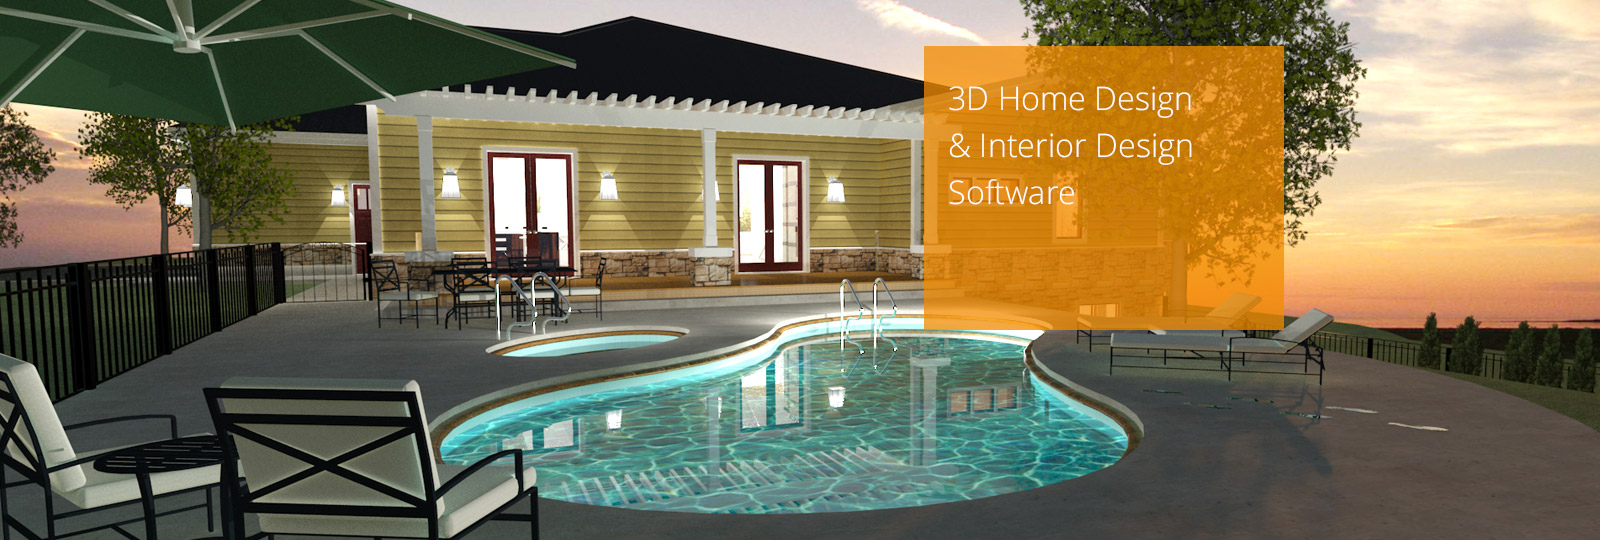 home designer software home designer software video tour home design